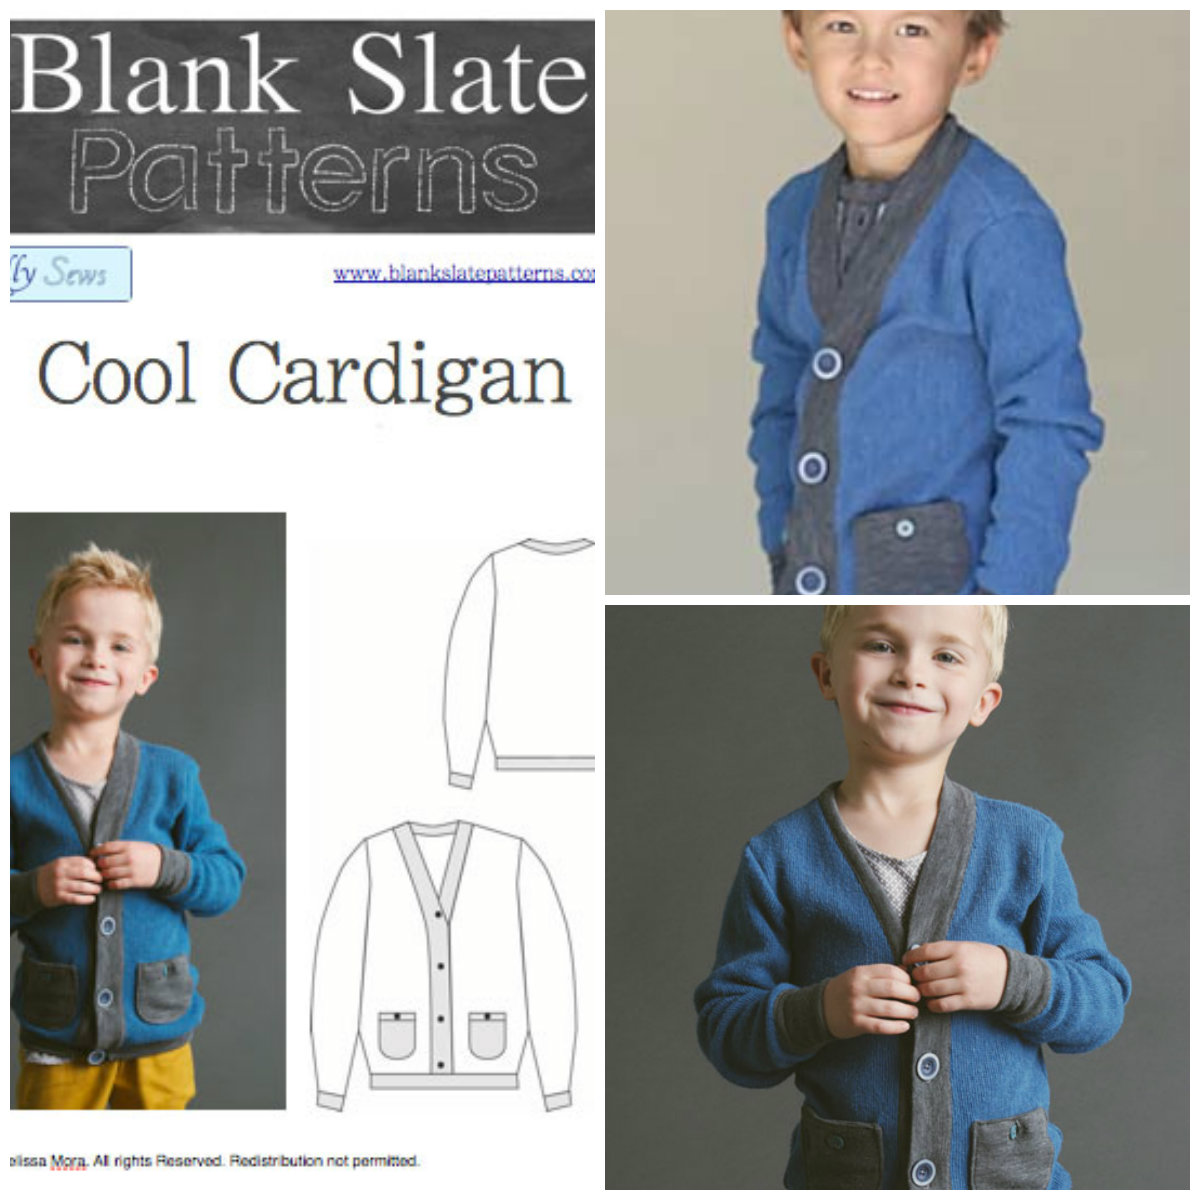 Blank Slate Child's Cardigan Downloadable Pattern Cool Cardigan